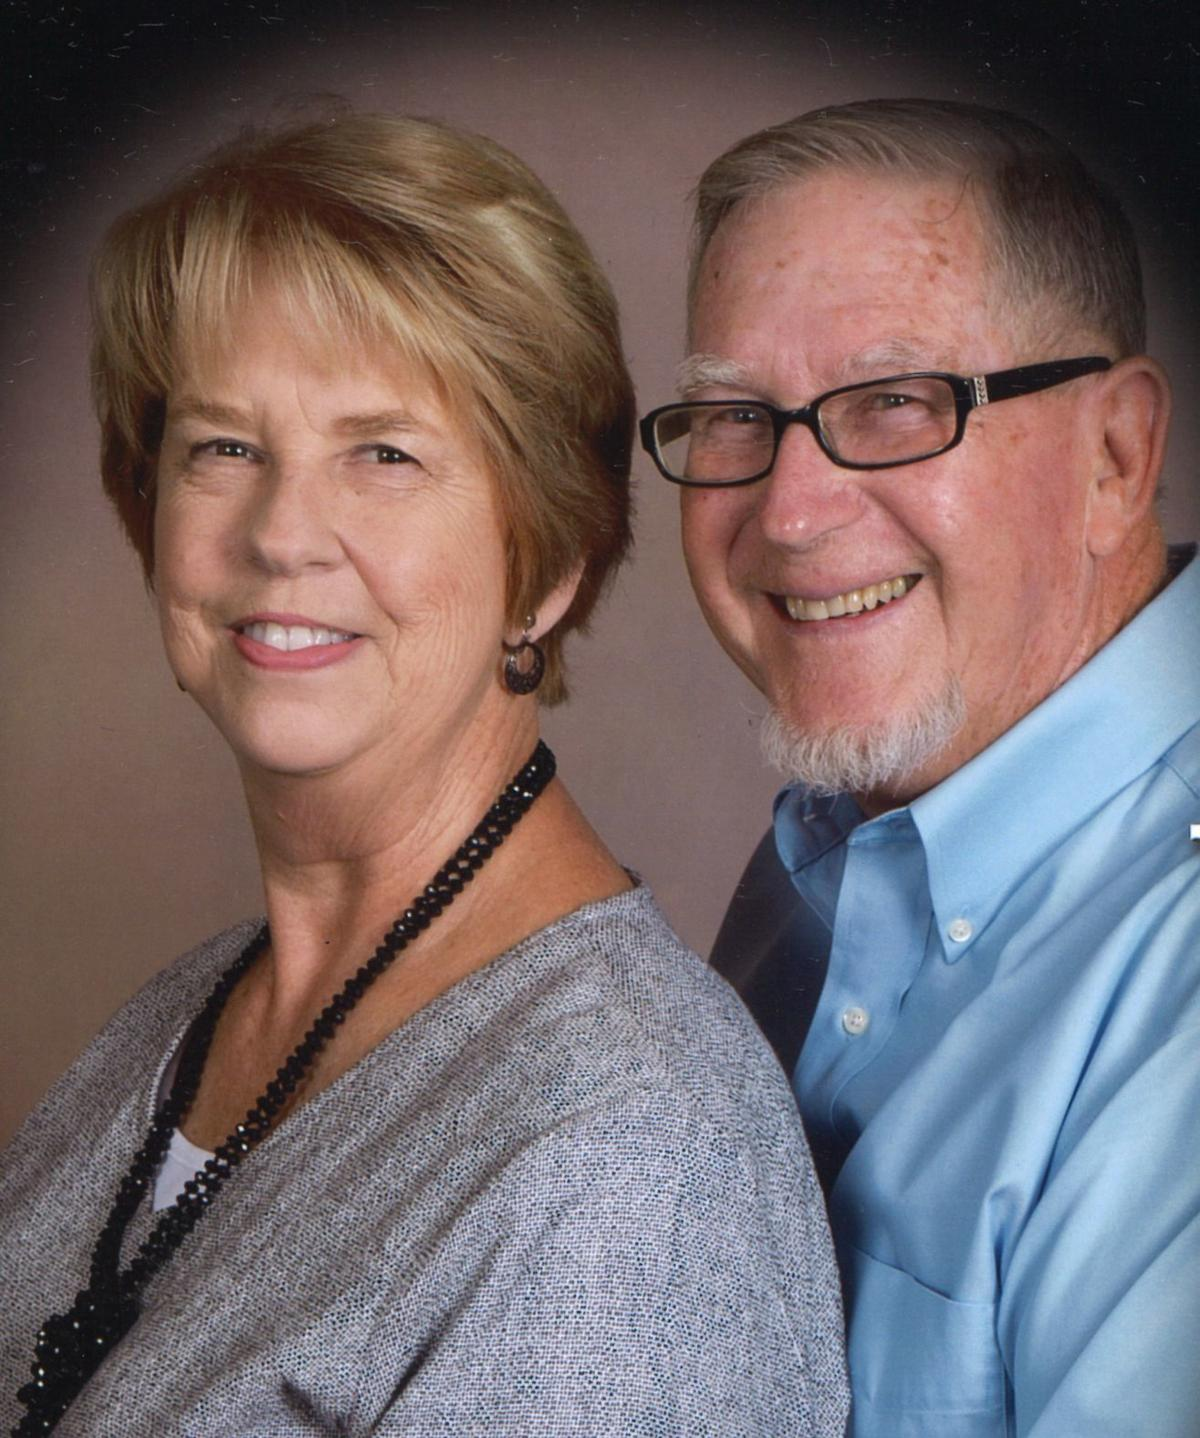 Mr. and Mrs. Roger Exner